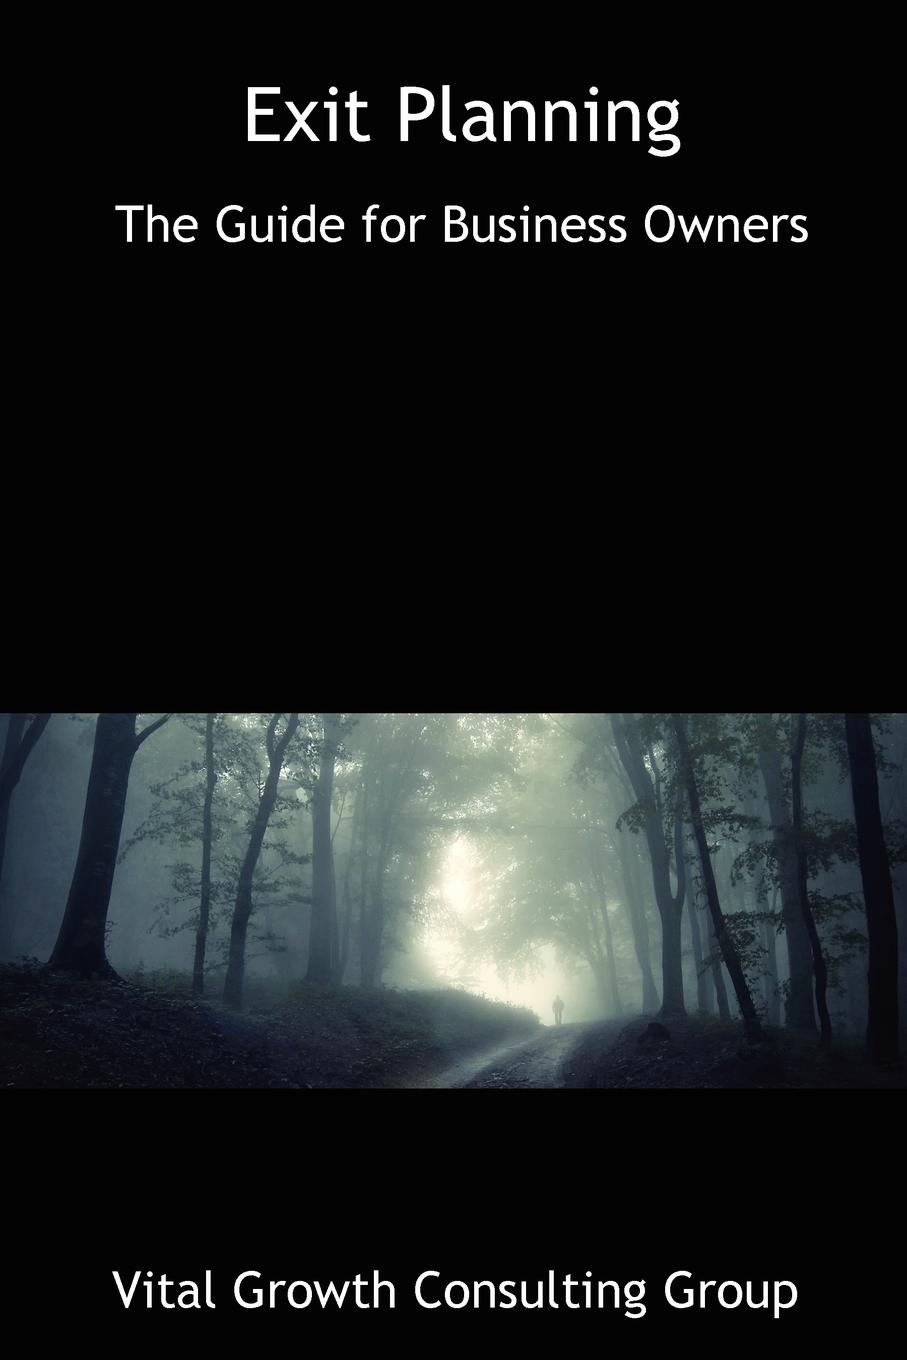 Exit Planning Exit Planning: The Guide for Business Owners addresses the strategic...